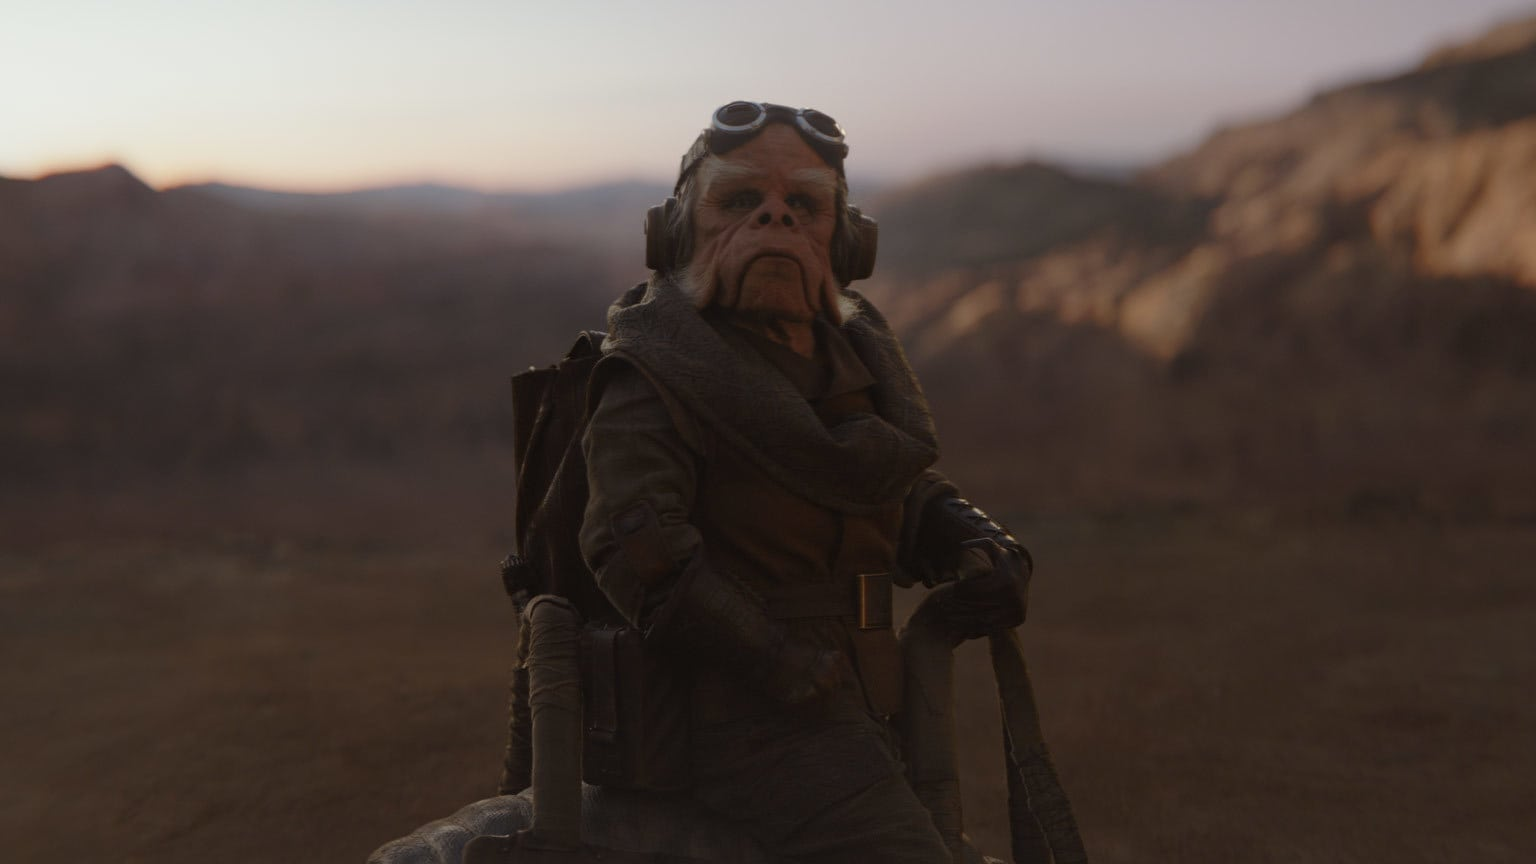 From a Certain Point of View: Who is Your Favorite Supporting Character in The Mandalorian So Far?